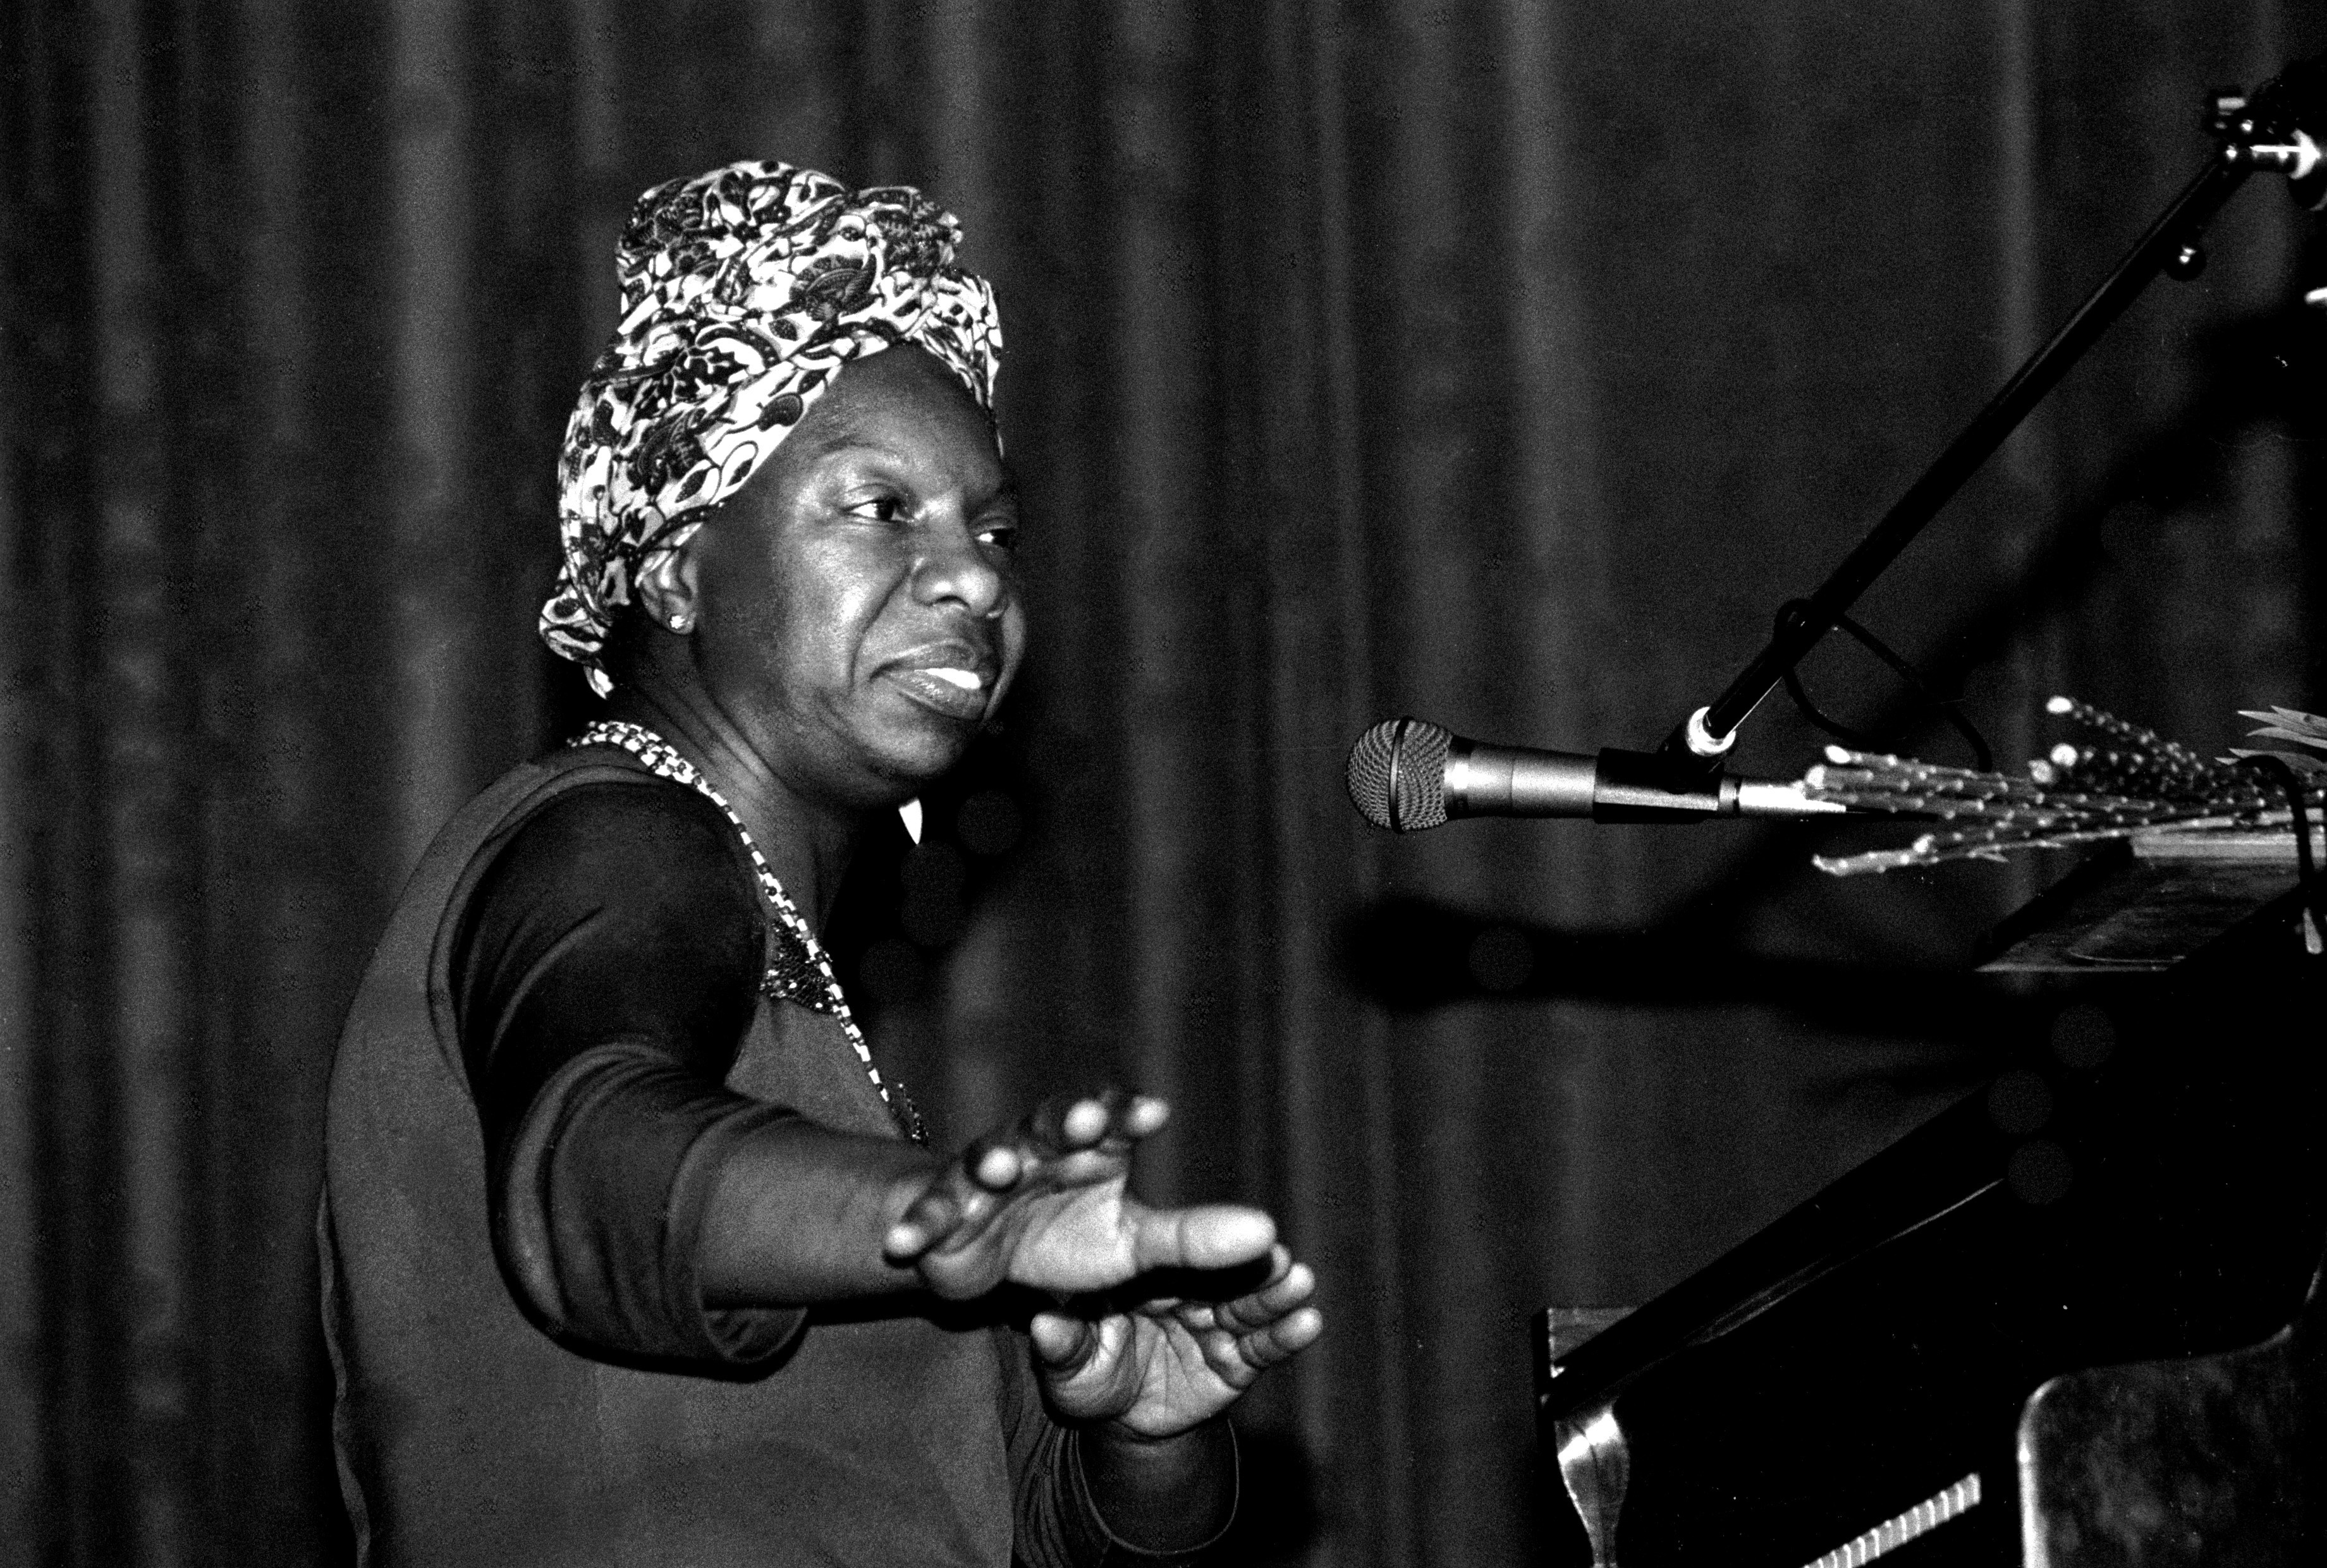 Nina Simone inducted in Rock & Roll Hall of Fame 2018